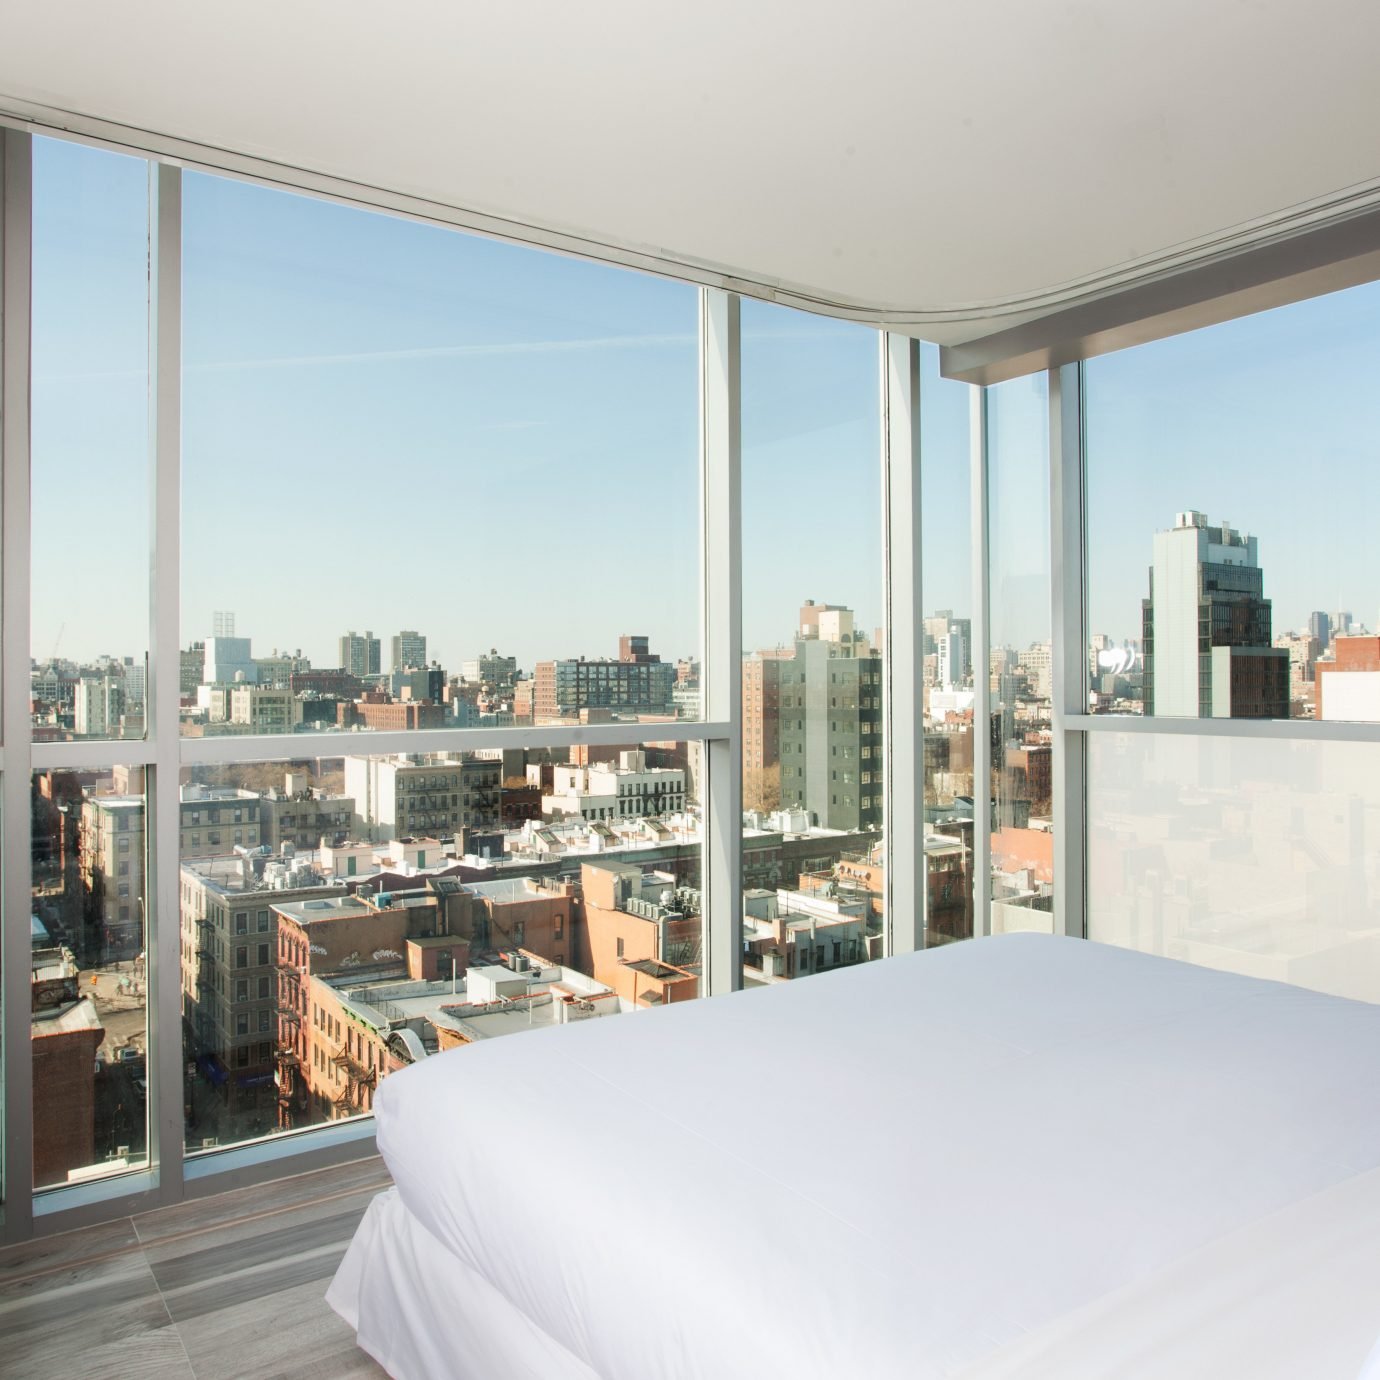 Bedroom City Offbeat Scenic views Suite property home living room condominium overlooking